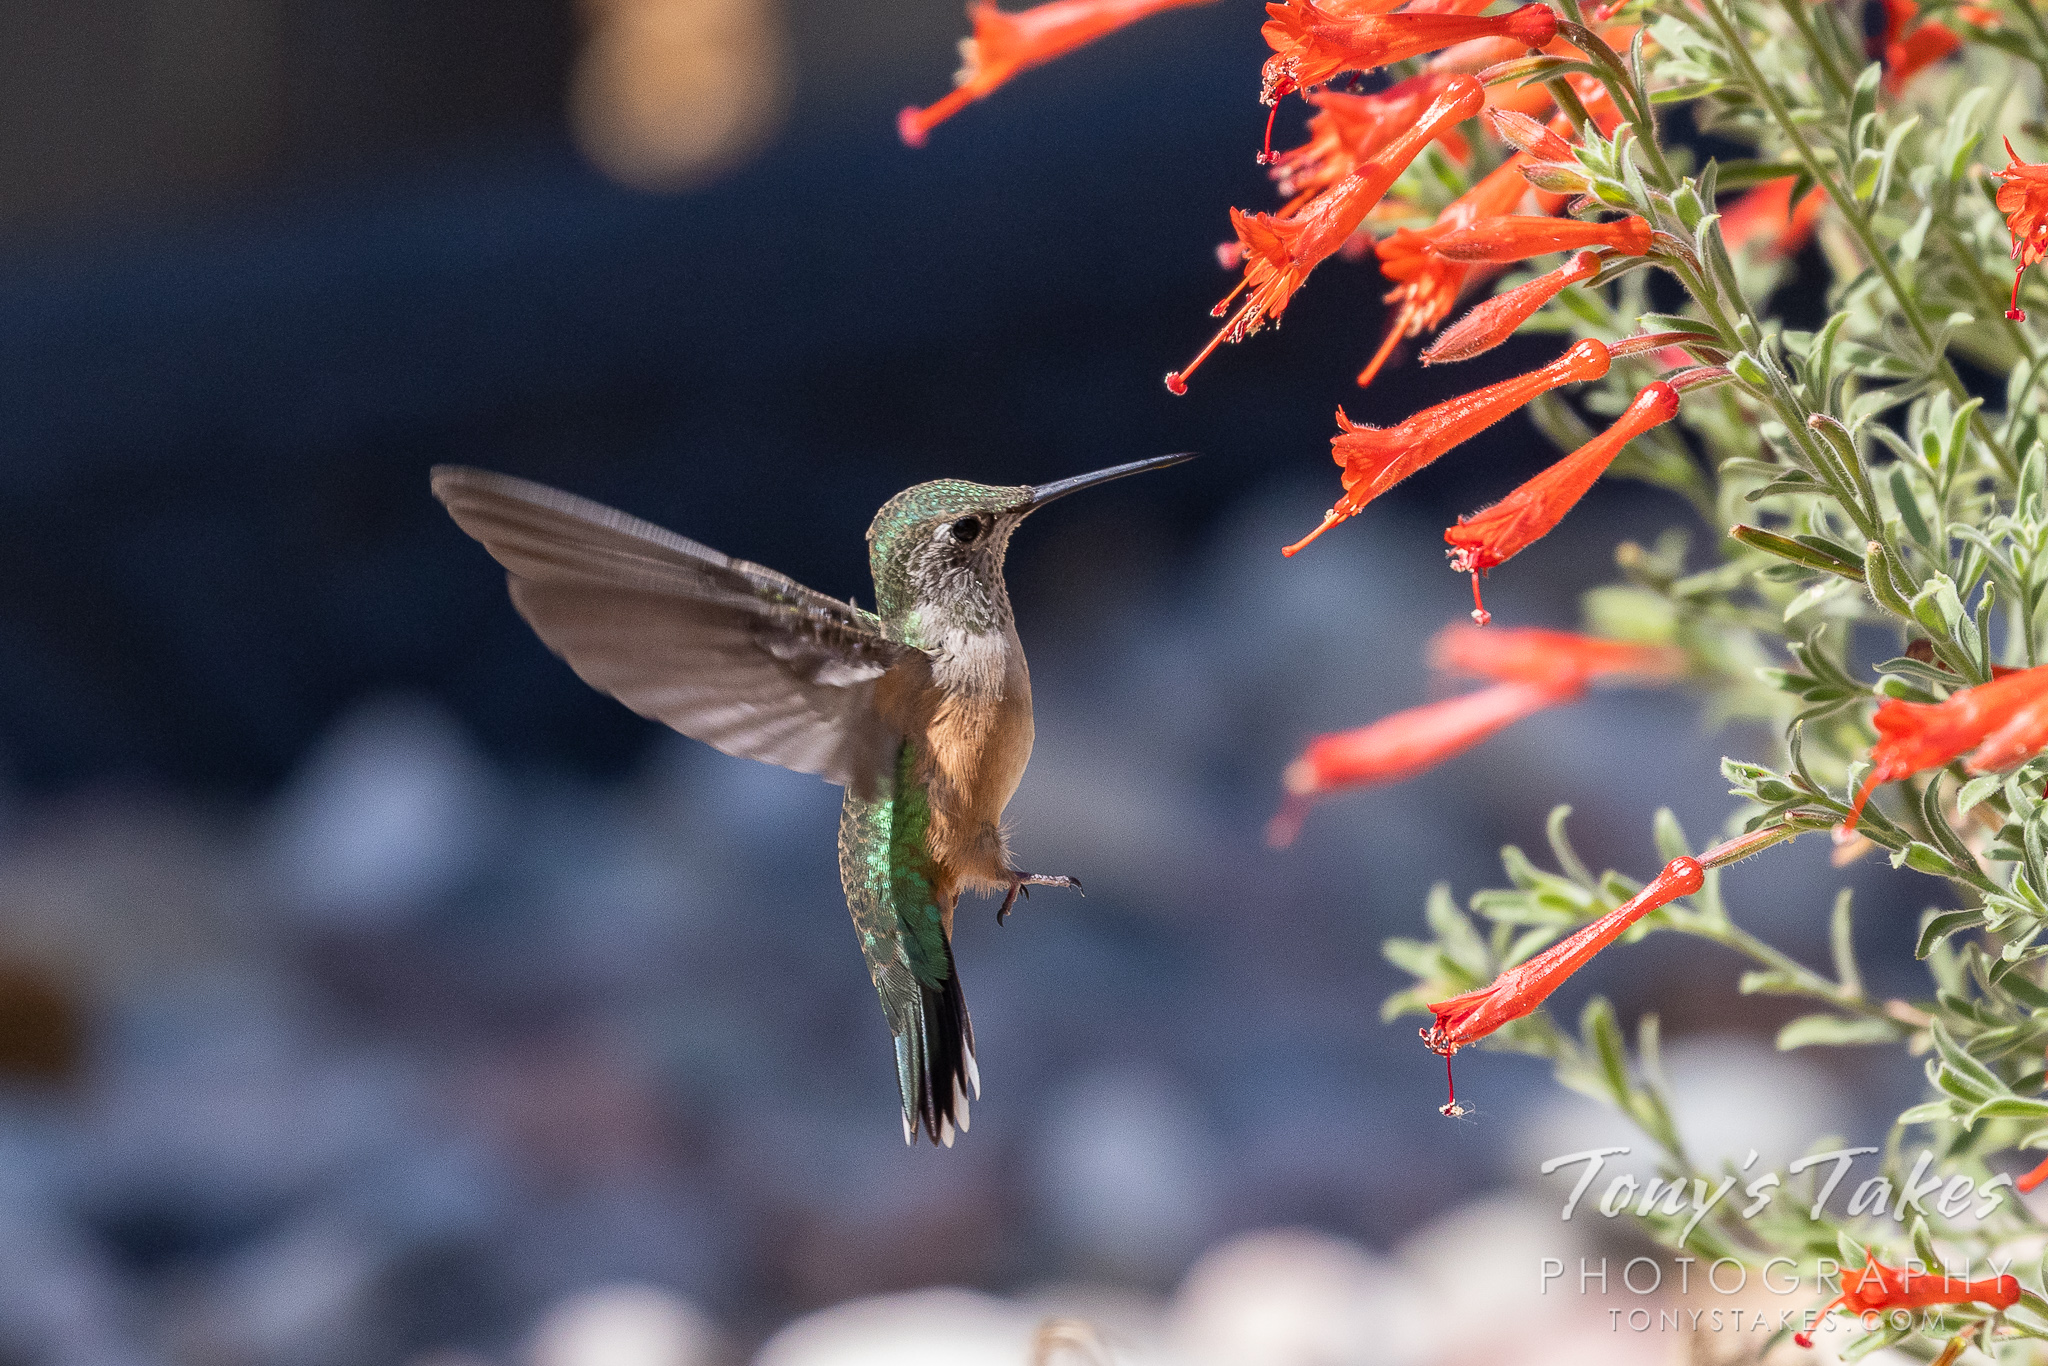 A broad-tailed hummingbird decides which flower to snack on. (© Tony's Takes)